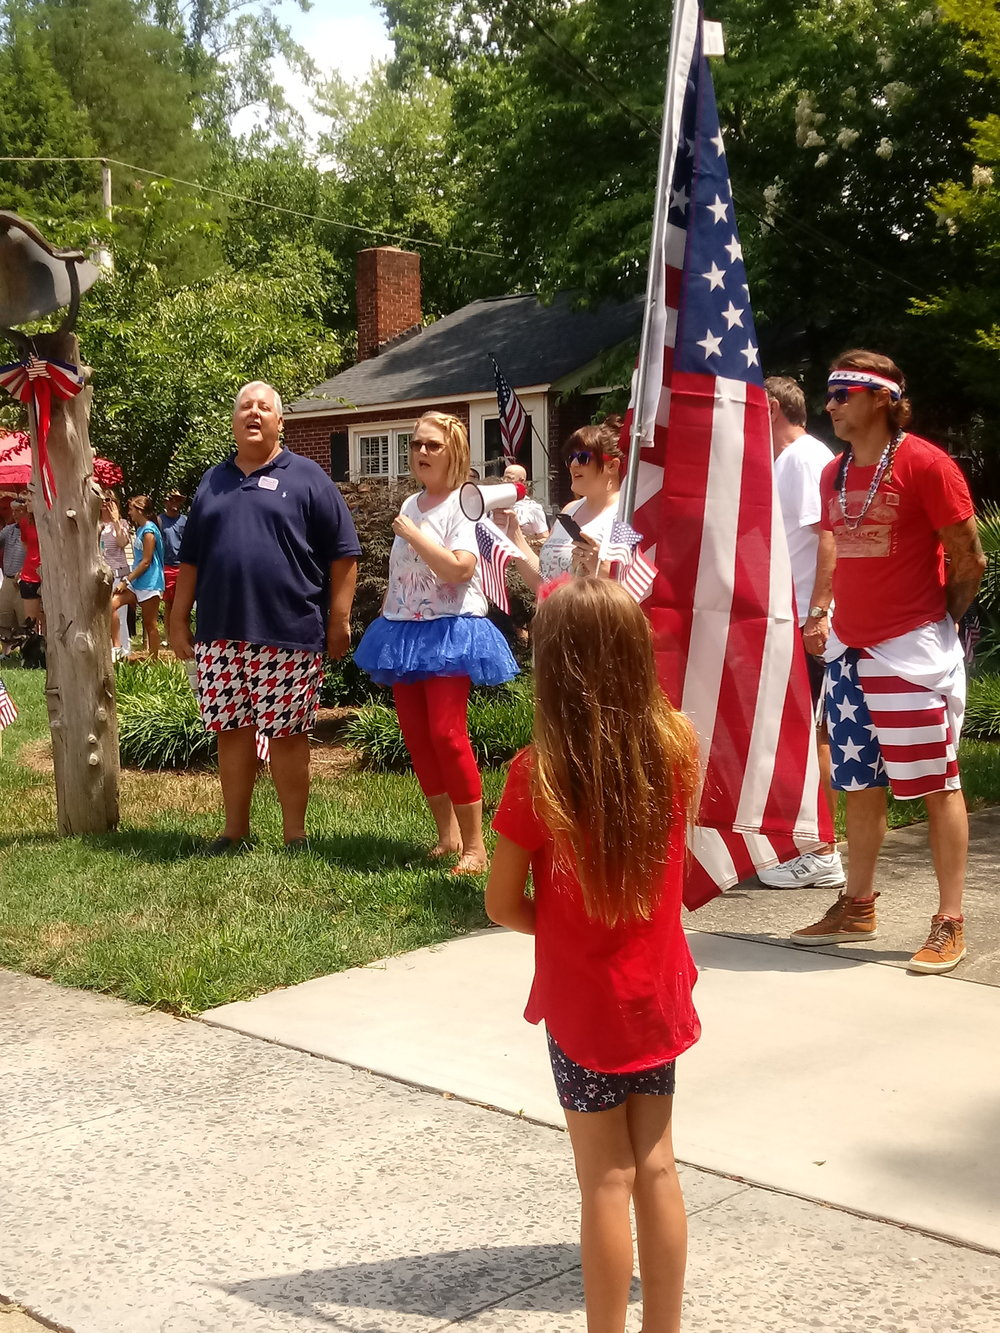 Stars & Stripes Forever - Original founders, the Johnson siblings sing with new neighbors, Brittany & Michael Kelly who will help keep the neighborhood tradition alive.